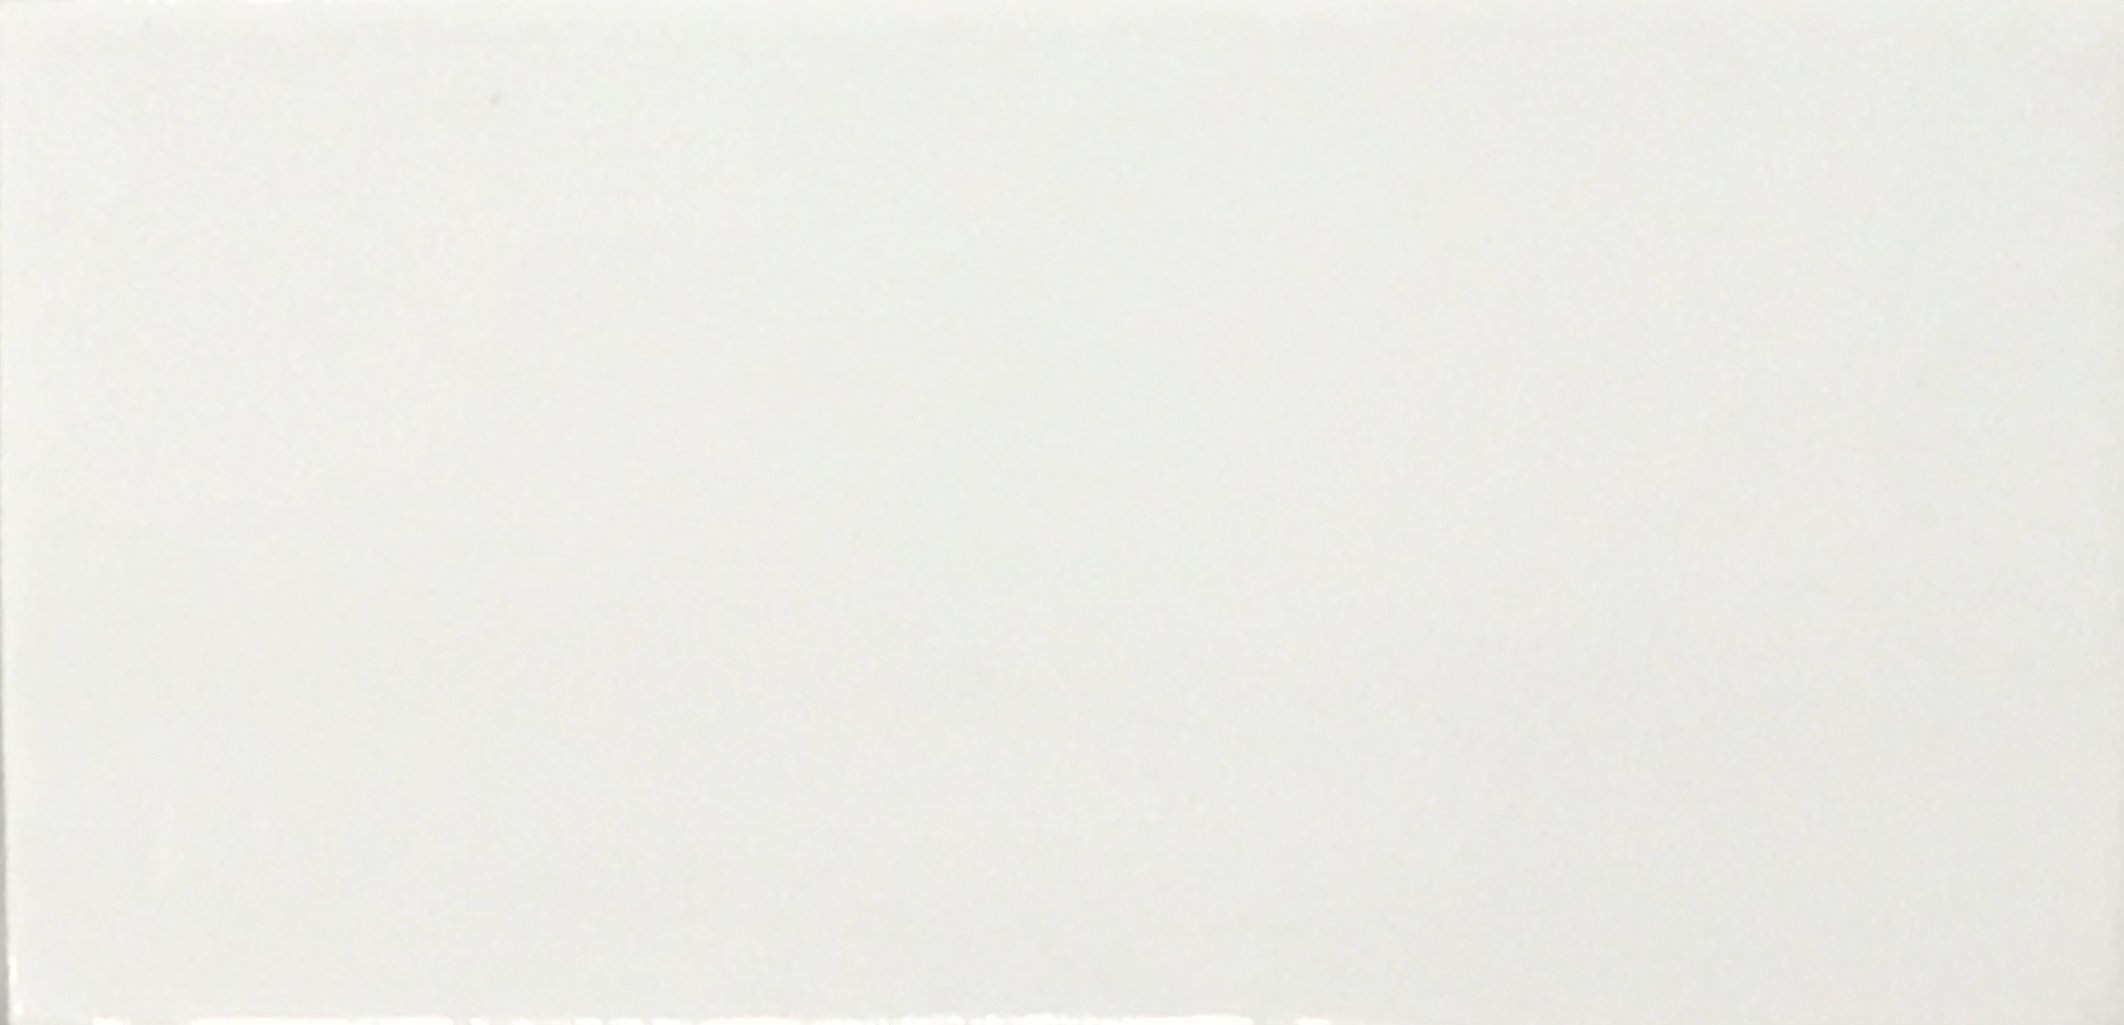 Waterworks Architectonics Field Tile 3 x 6 in White Glossy by Water Works (Image #2)